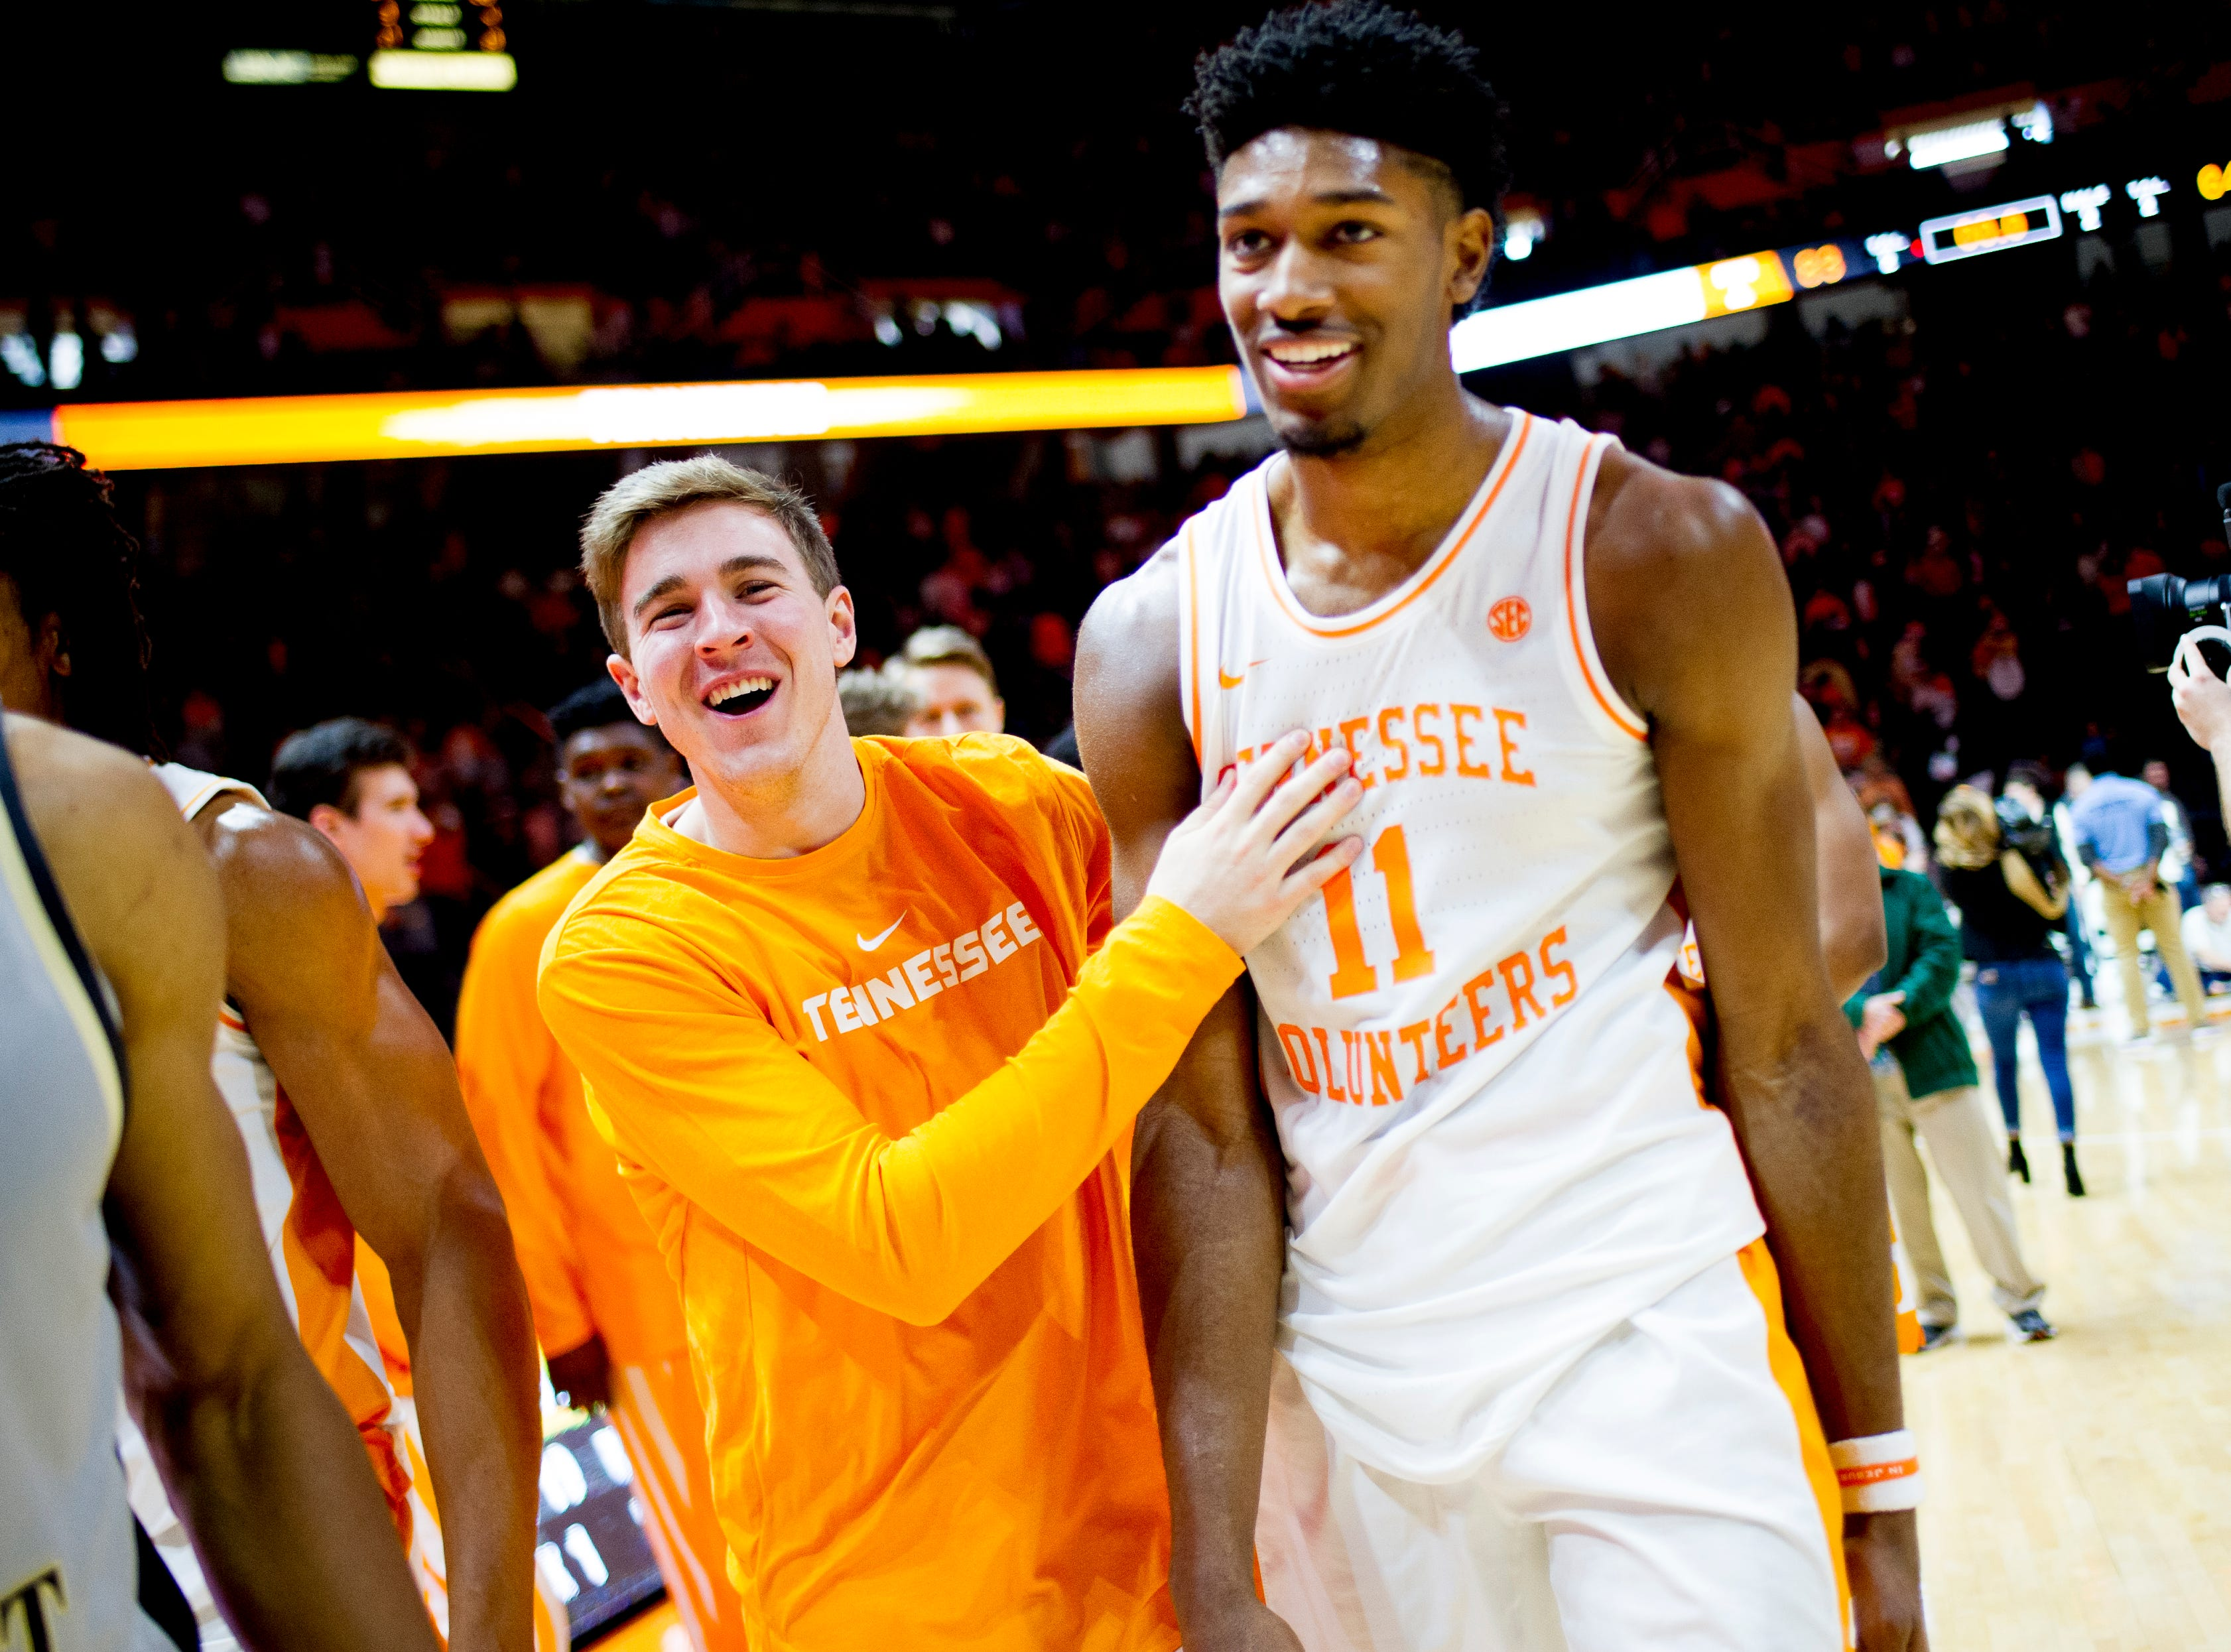 Tennessee forward Kyle Alexander (11) and Tennessee guard Brad Woodson (12) celebrate their 83-64 win over Wake Forest at Thompson-Boling Arena in Knoxville, Tennessee on Saturday, December 22, 2018.